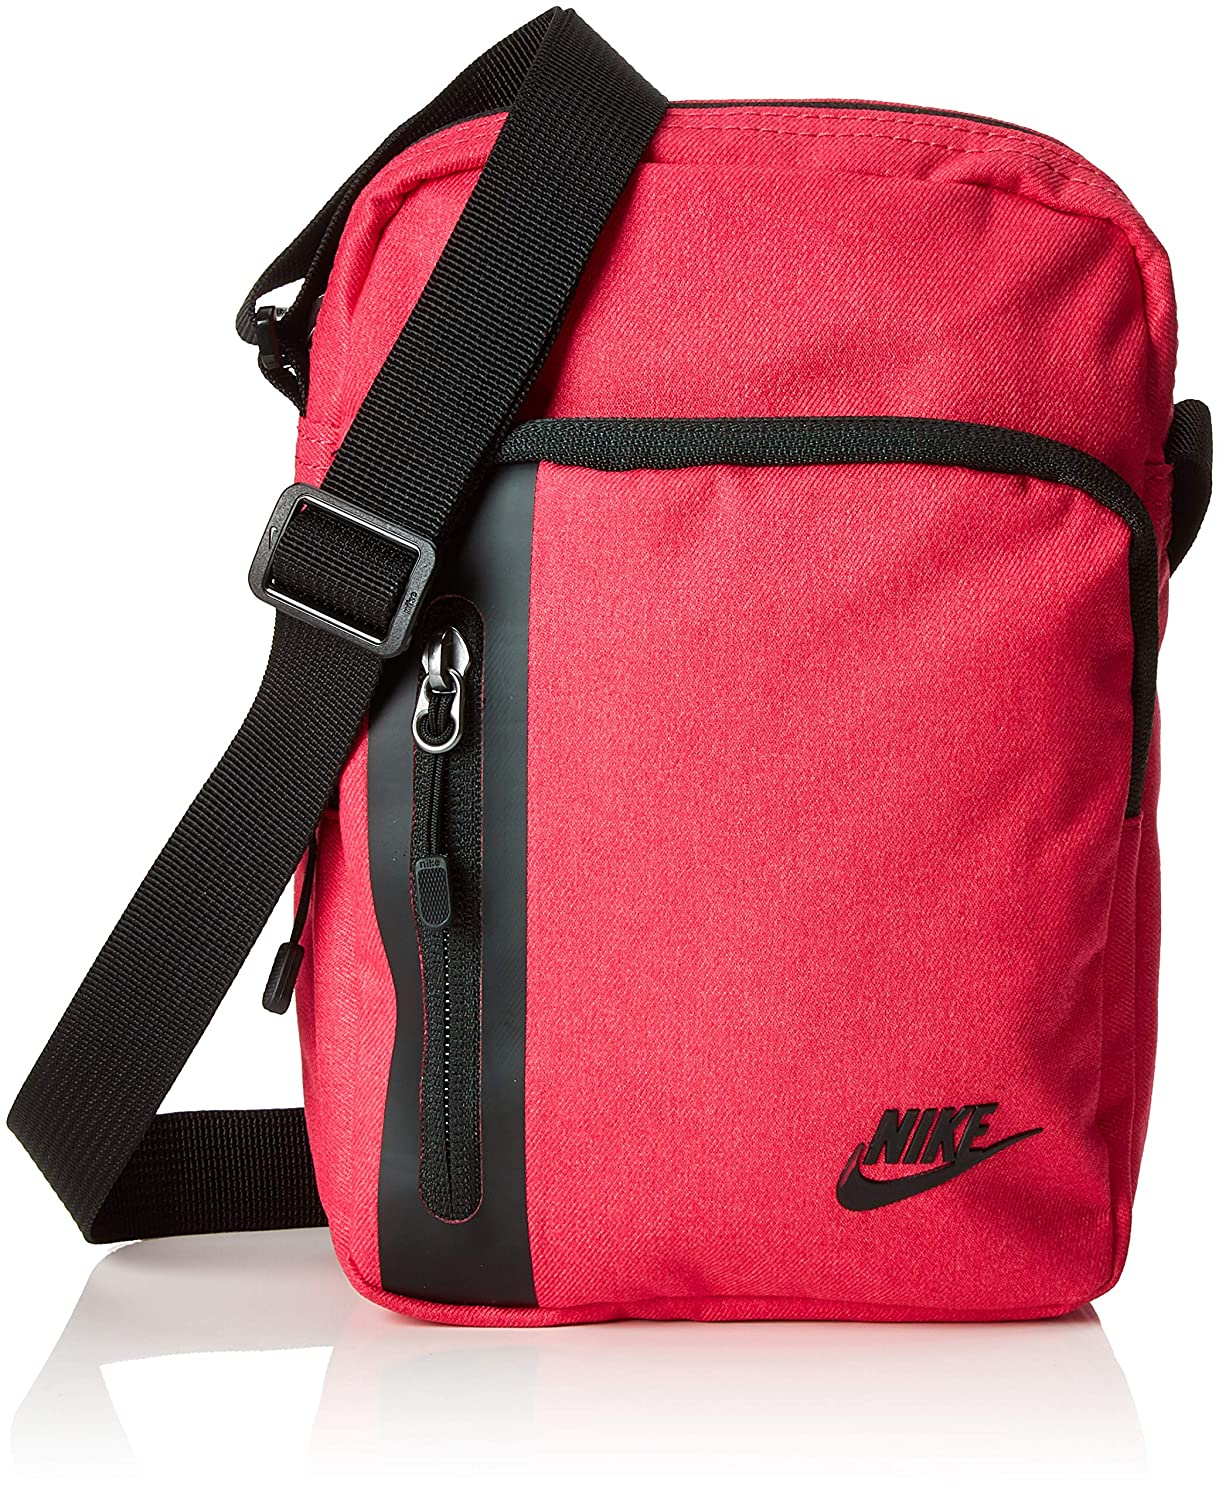 e831ccf66786 Nike Core Small Items 3.0 Bag Unisex Sports Athletic Pink BA5268-693 ...